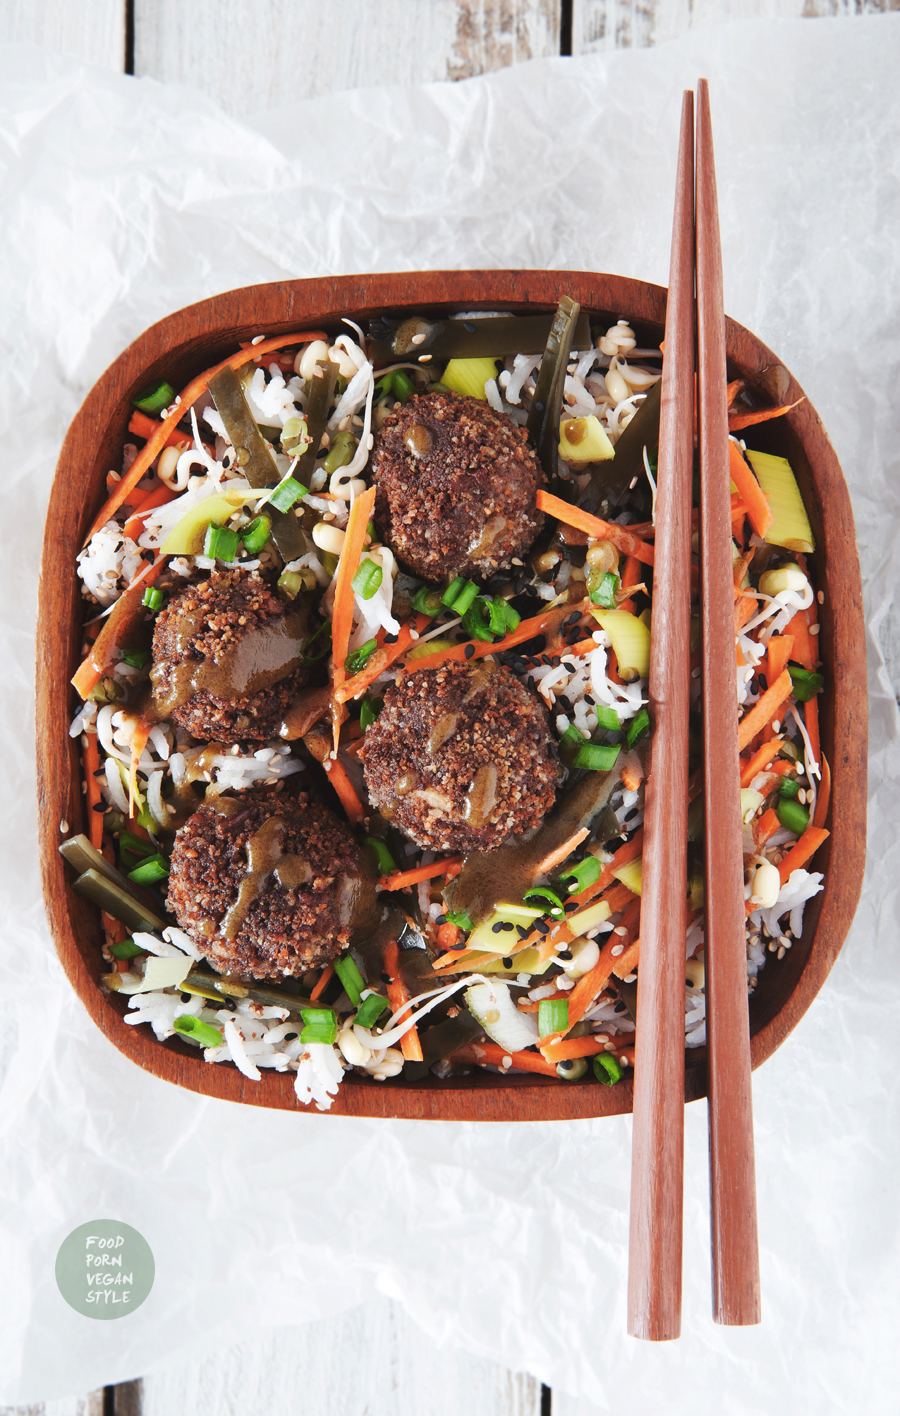 Vegan asian protein meatballs with adzuki beans, purple rice, five spice and miso